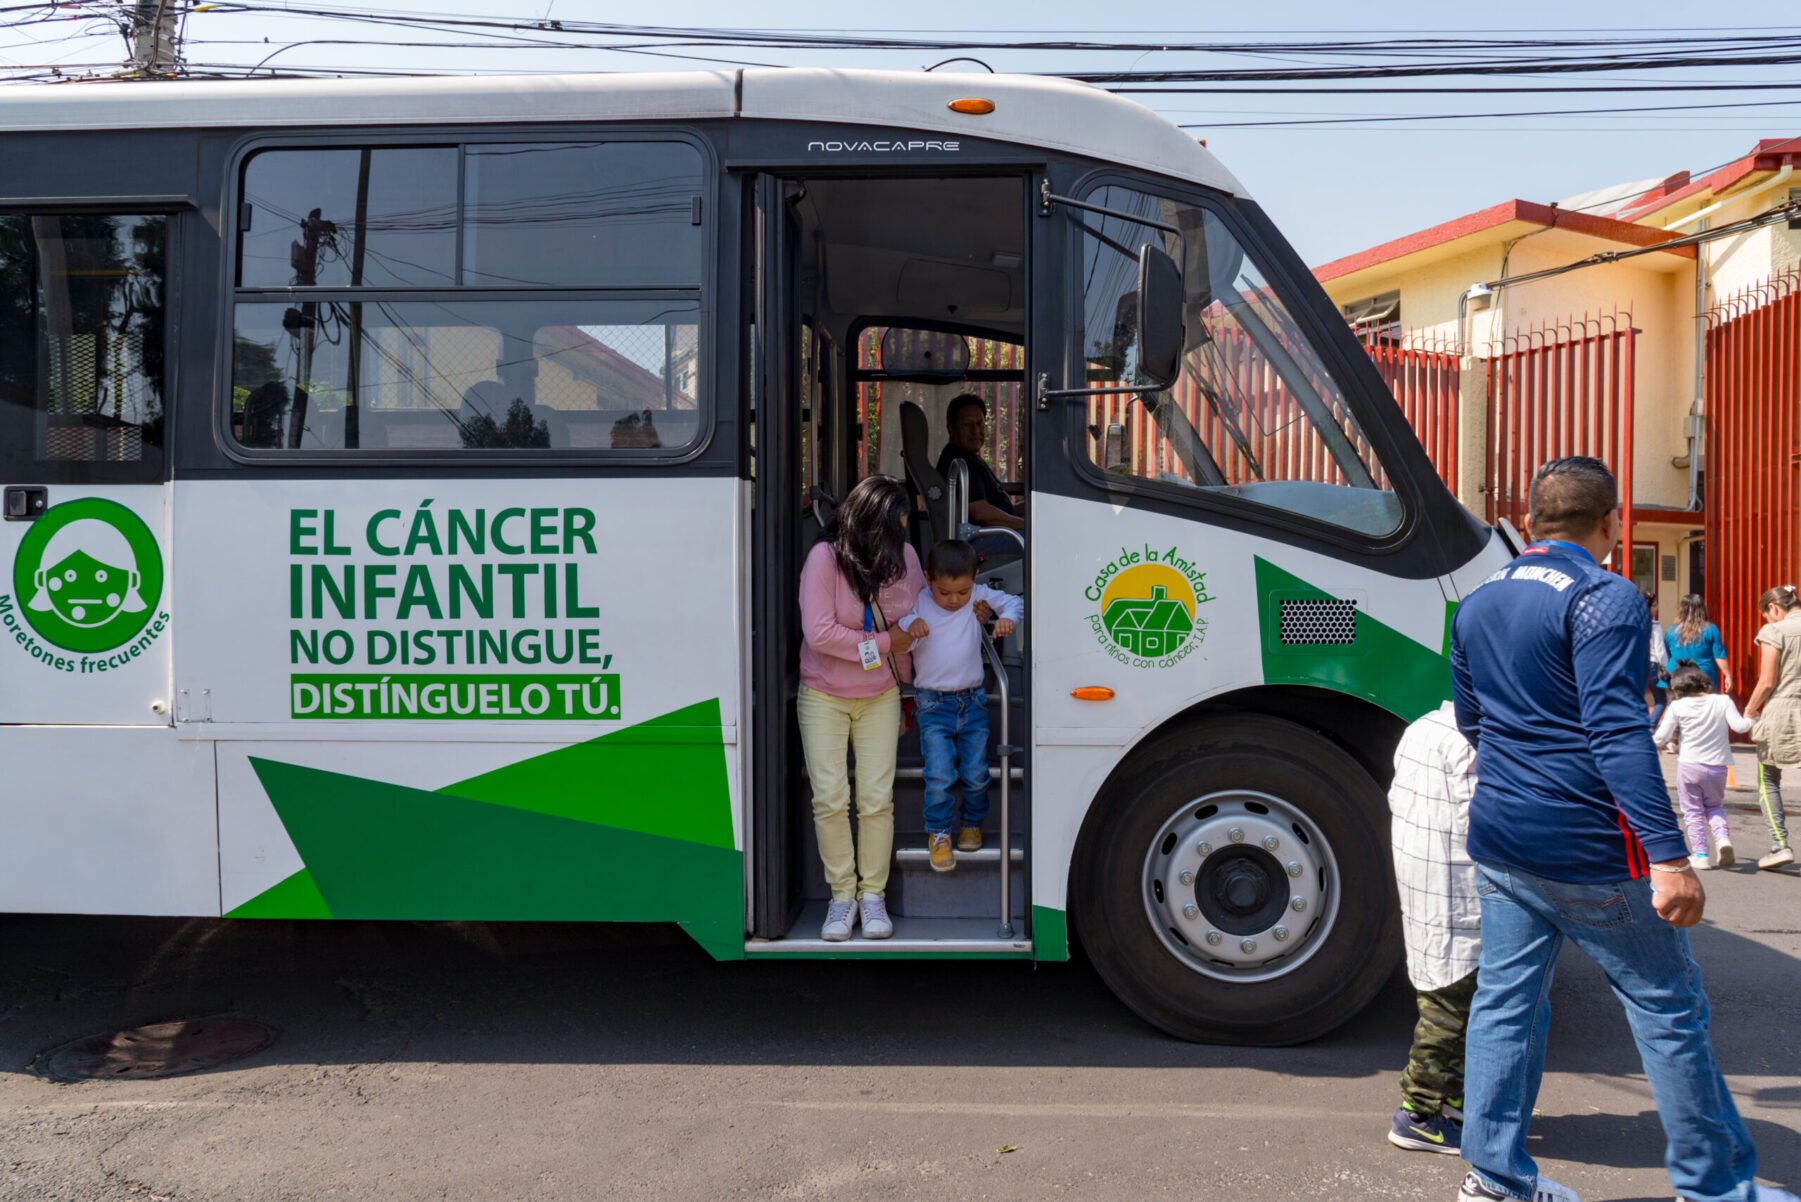 Casa de la Amistad provides transportation services to pediatric cancer patients in Mexico. (Photo courtesy of Casa de la Amistad)